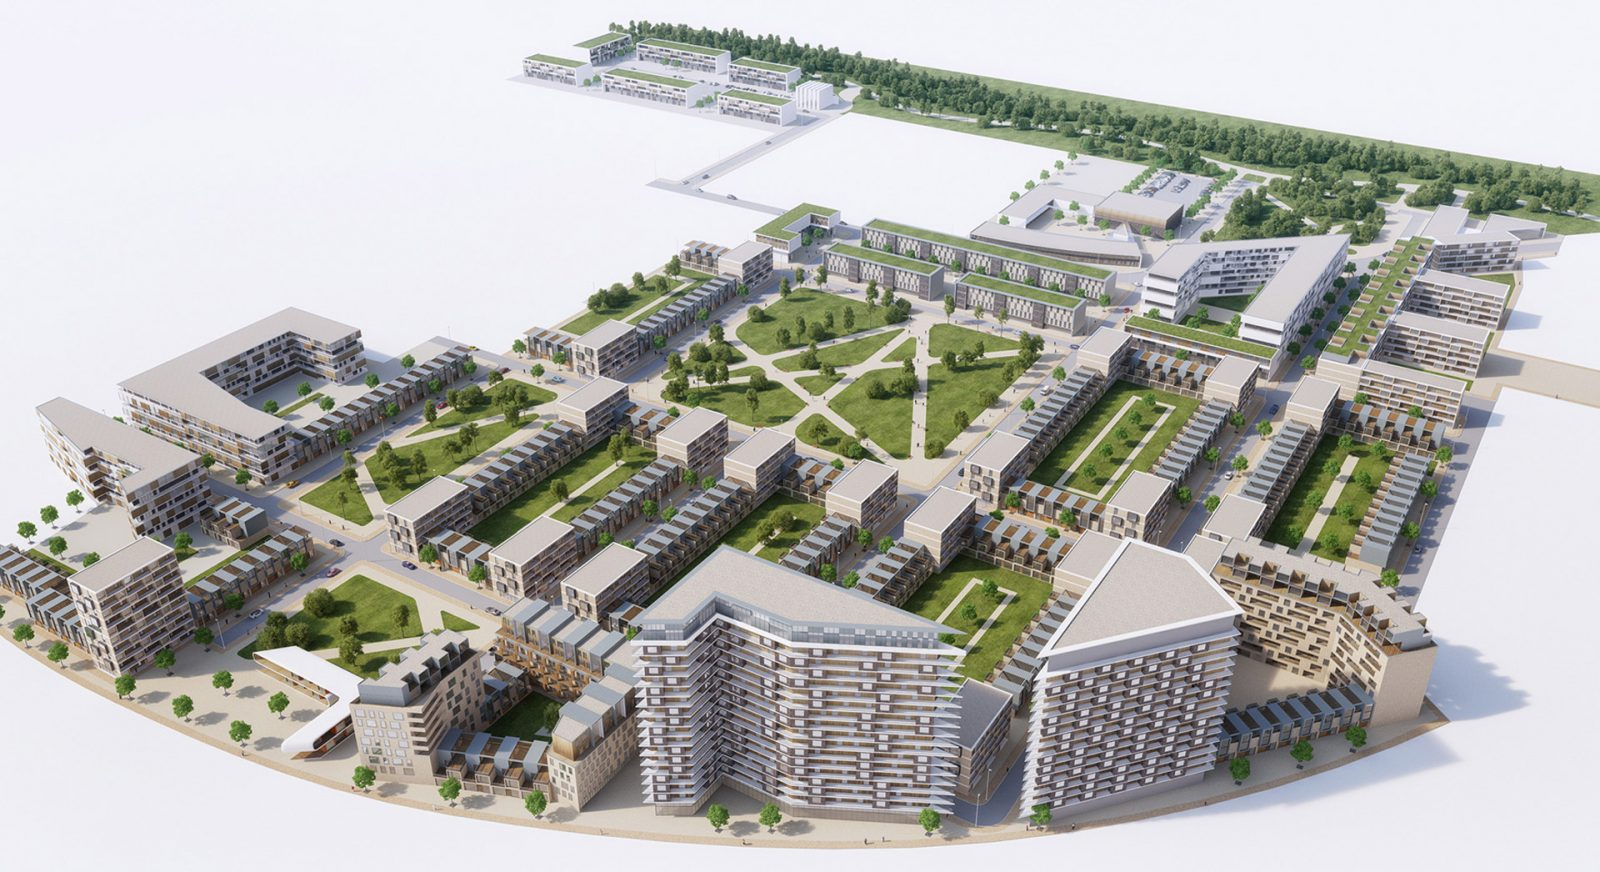 FT dumballs road masterplan cardiff modern apartment building architects jersey 21